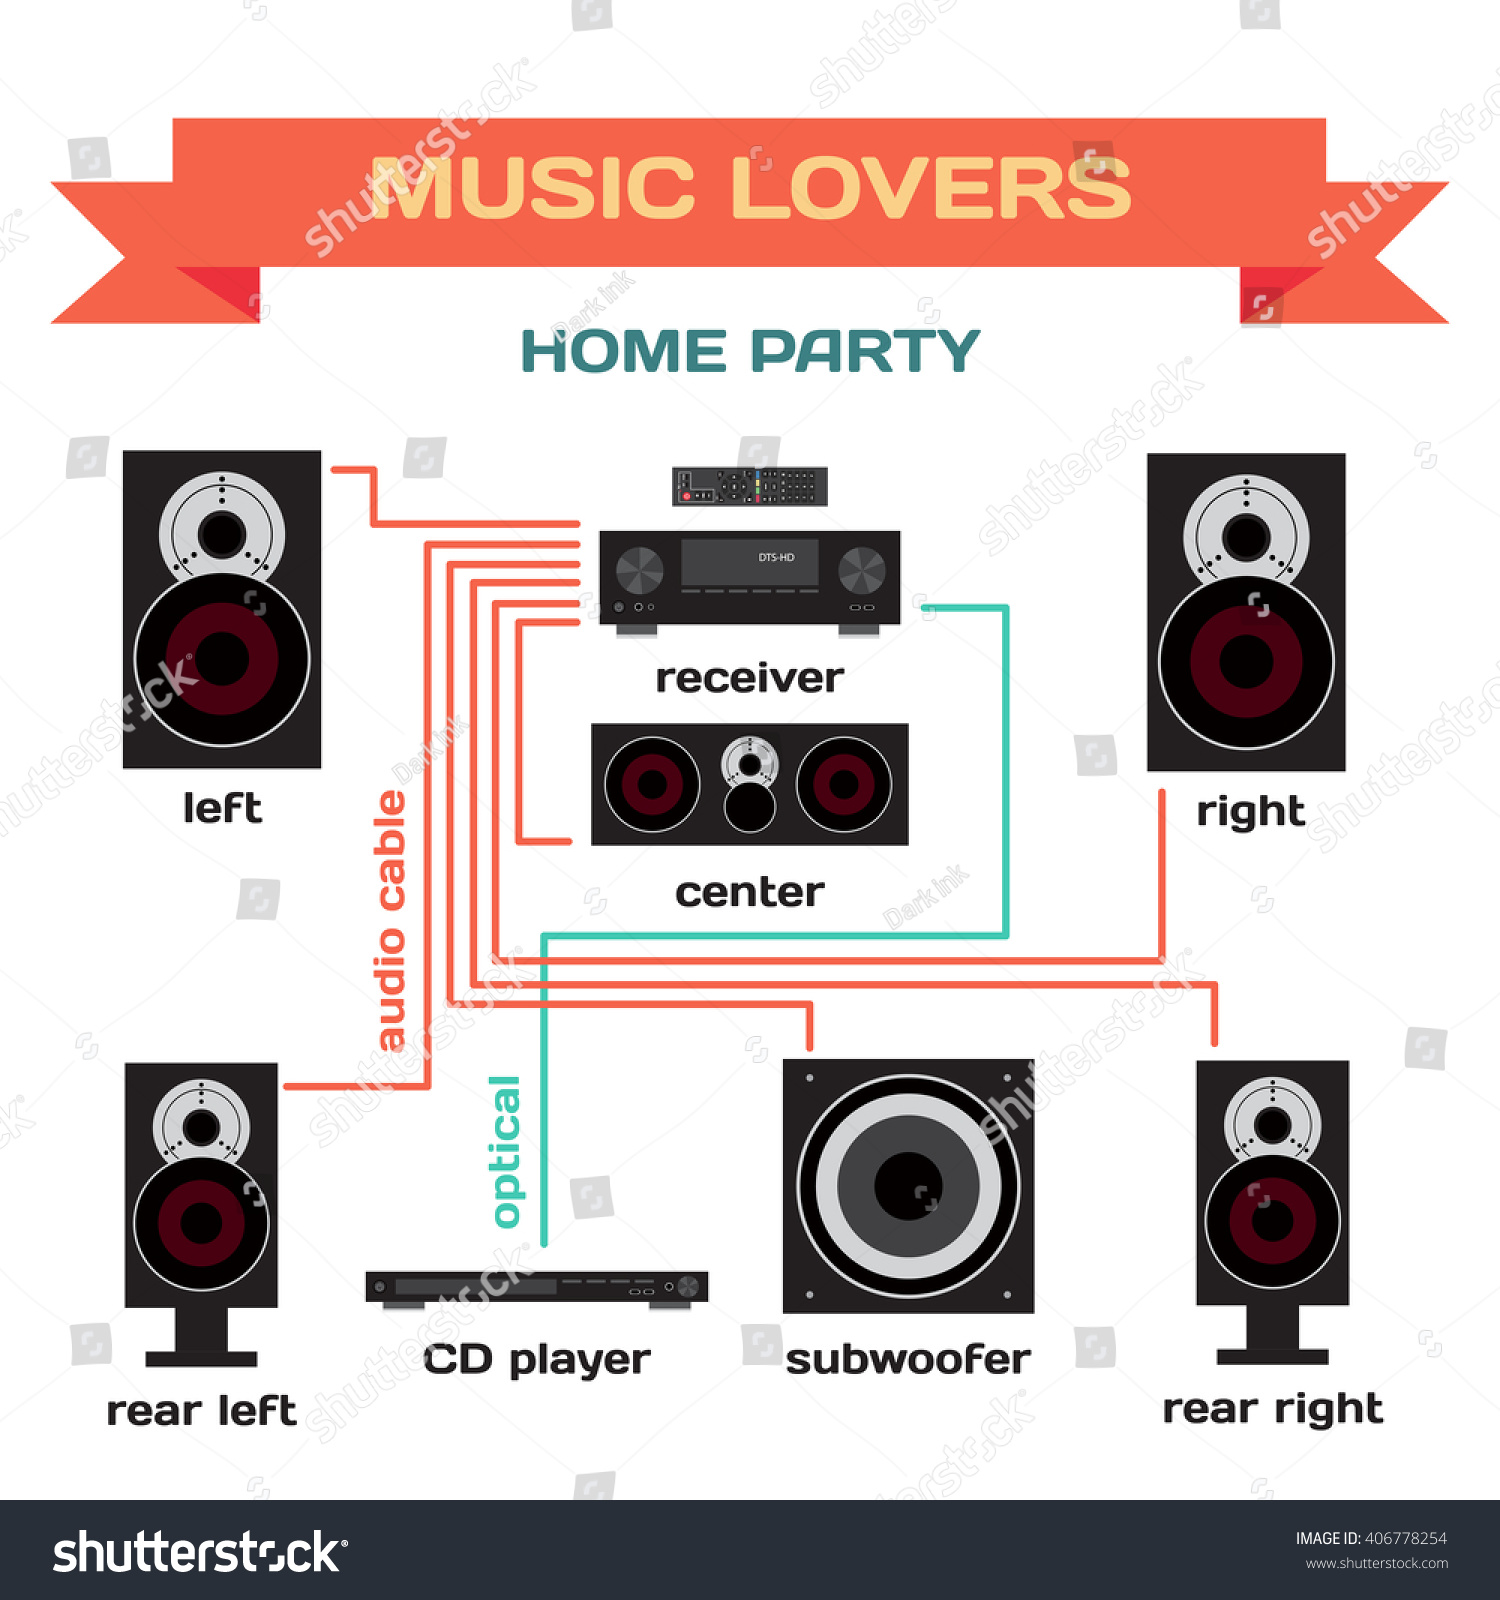 wiring music system home party vector stock vector 406778254 wiring a music system for home party vector flat design connect the receiver to your